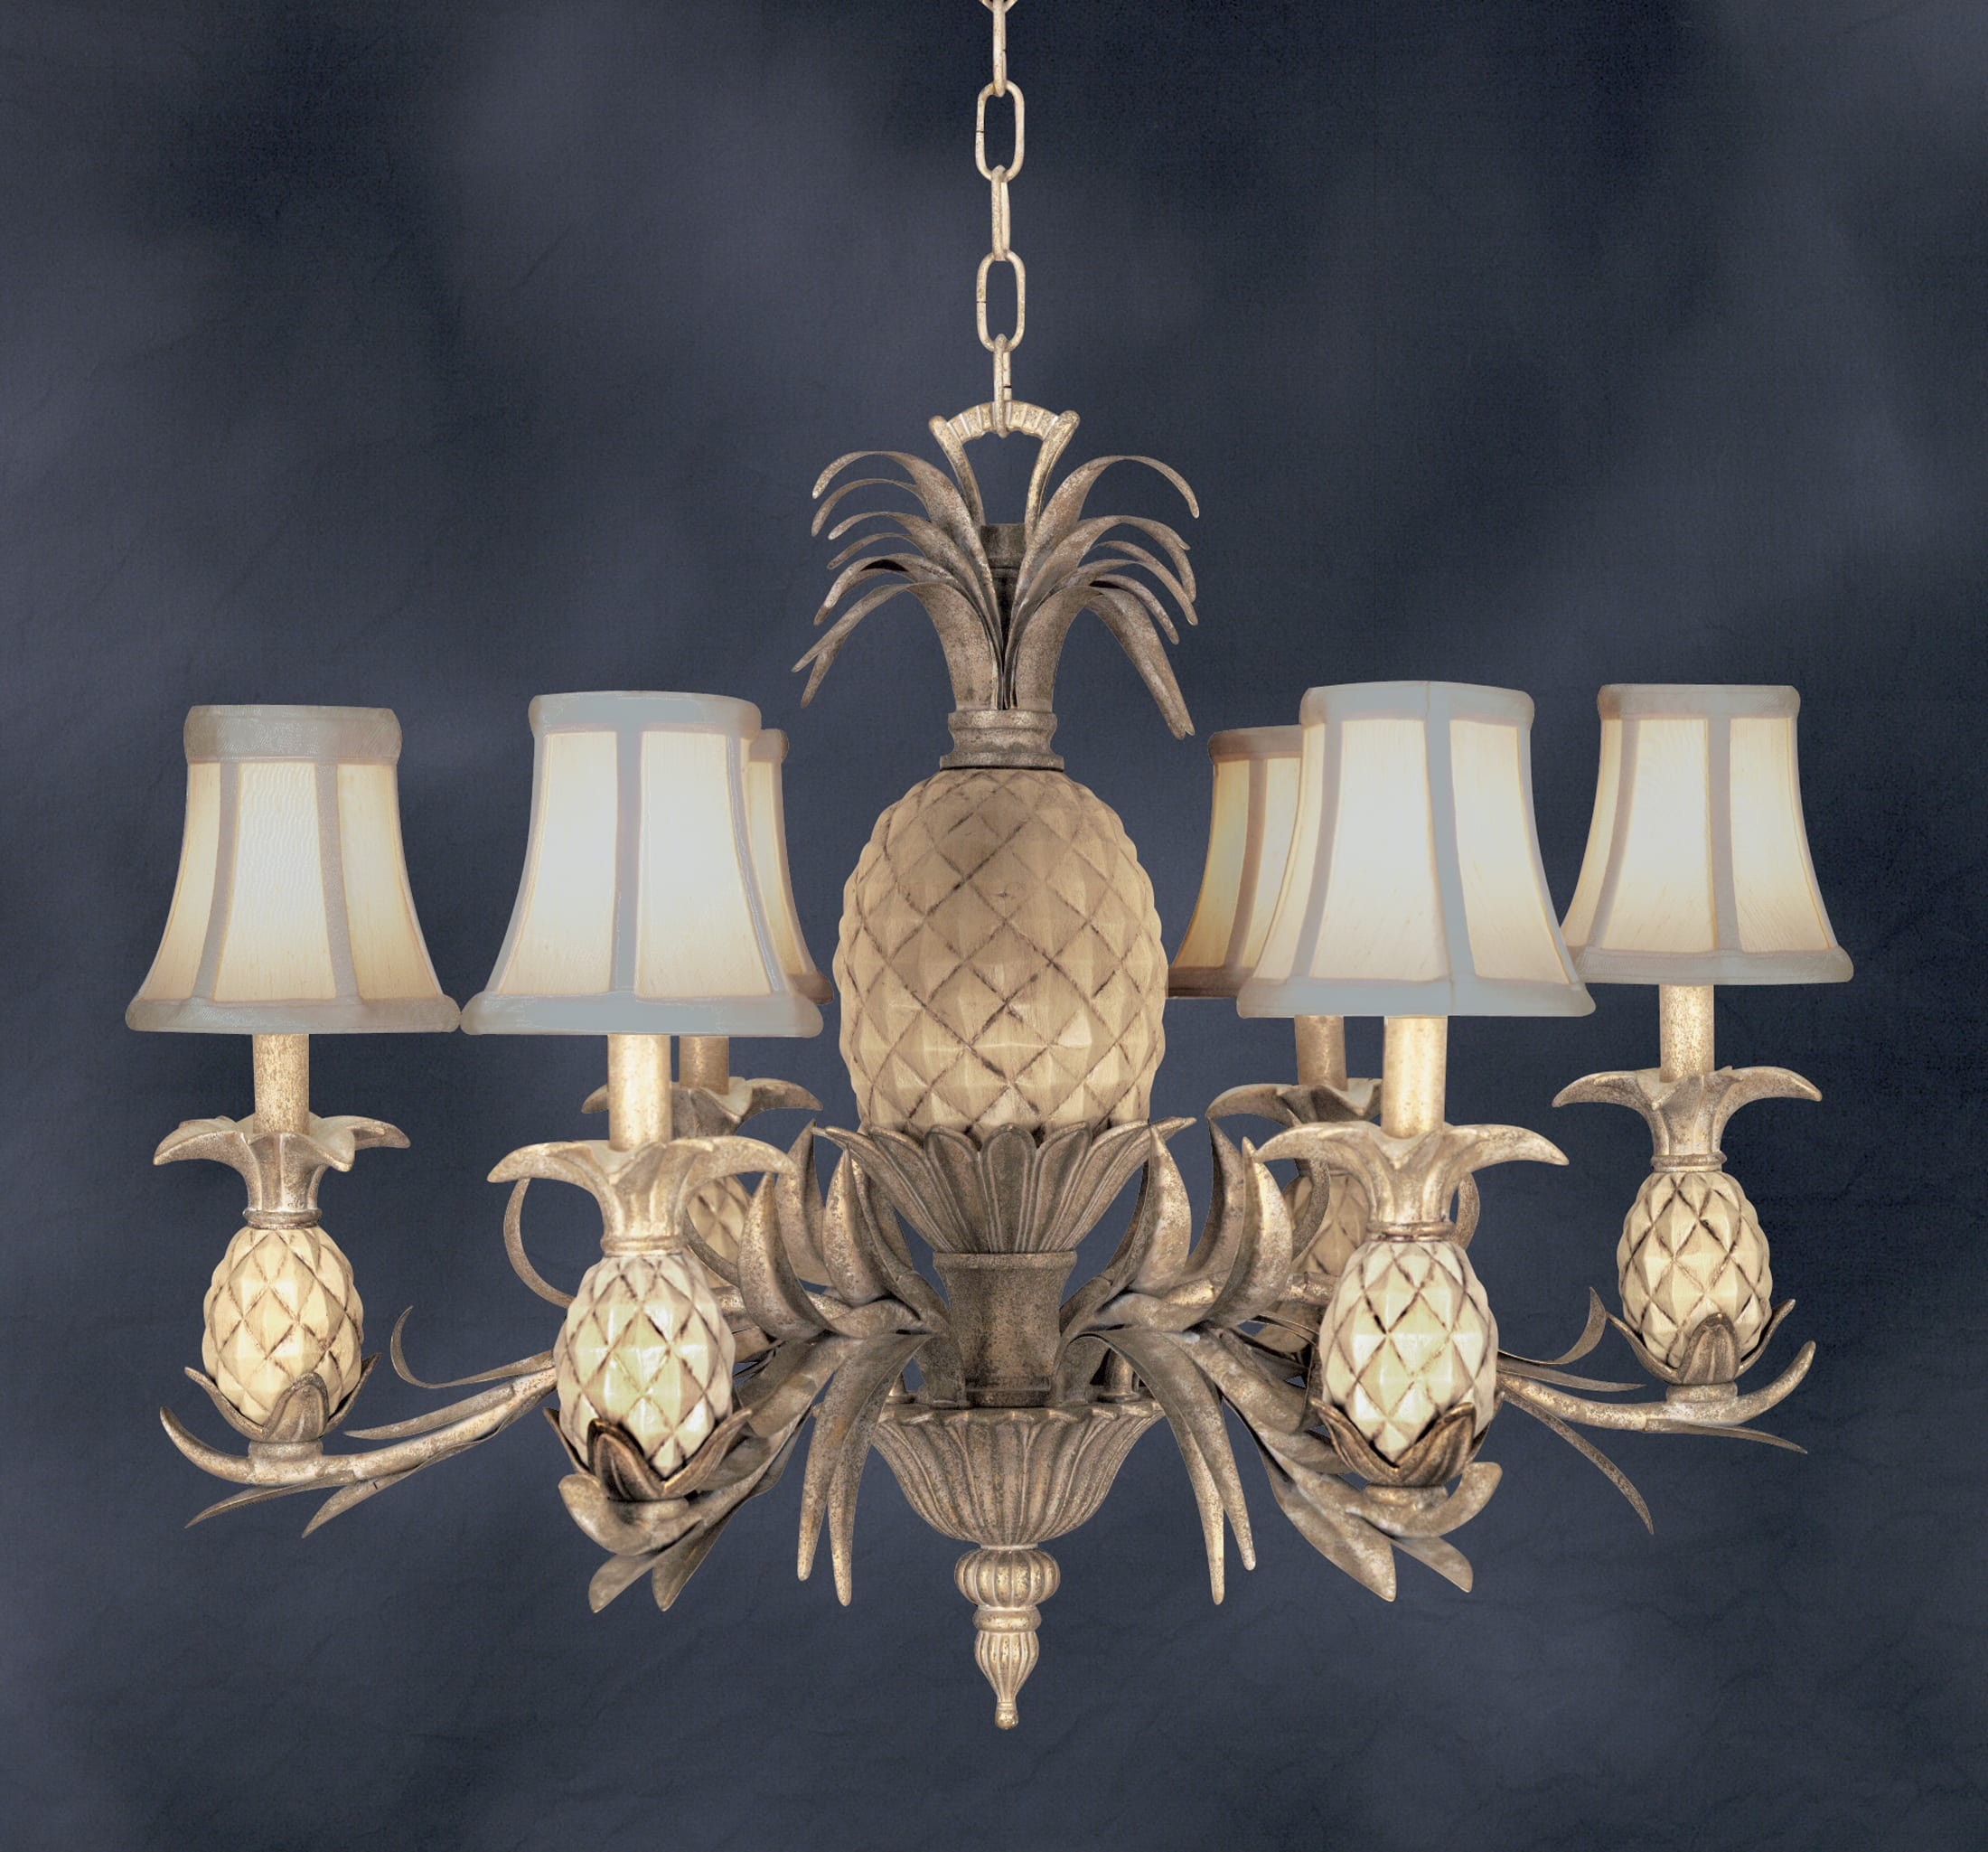 Quoizel La5022gc Gold Coast 6 Light Up Lighting Chandelier From The Lafayette Collection Lightingdirect Com